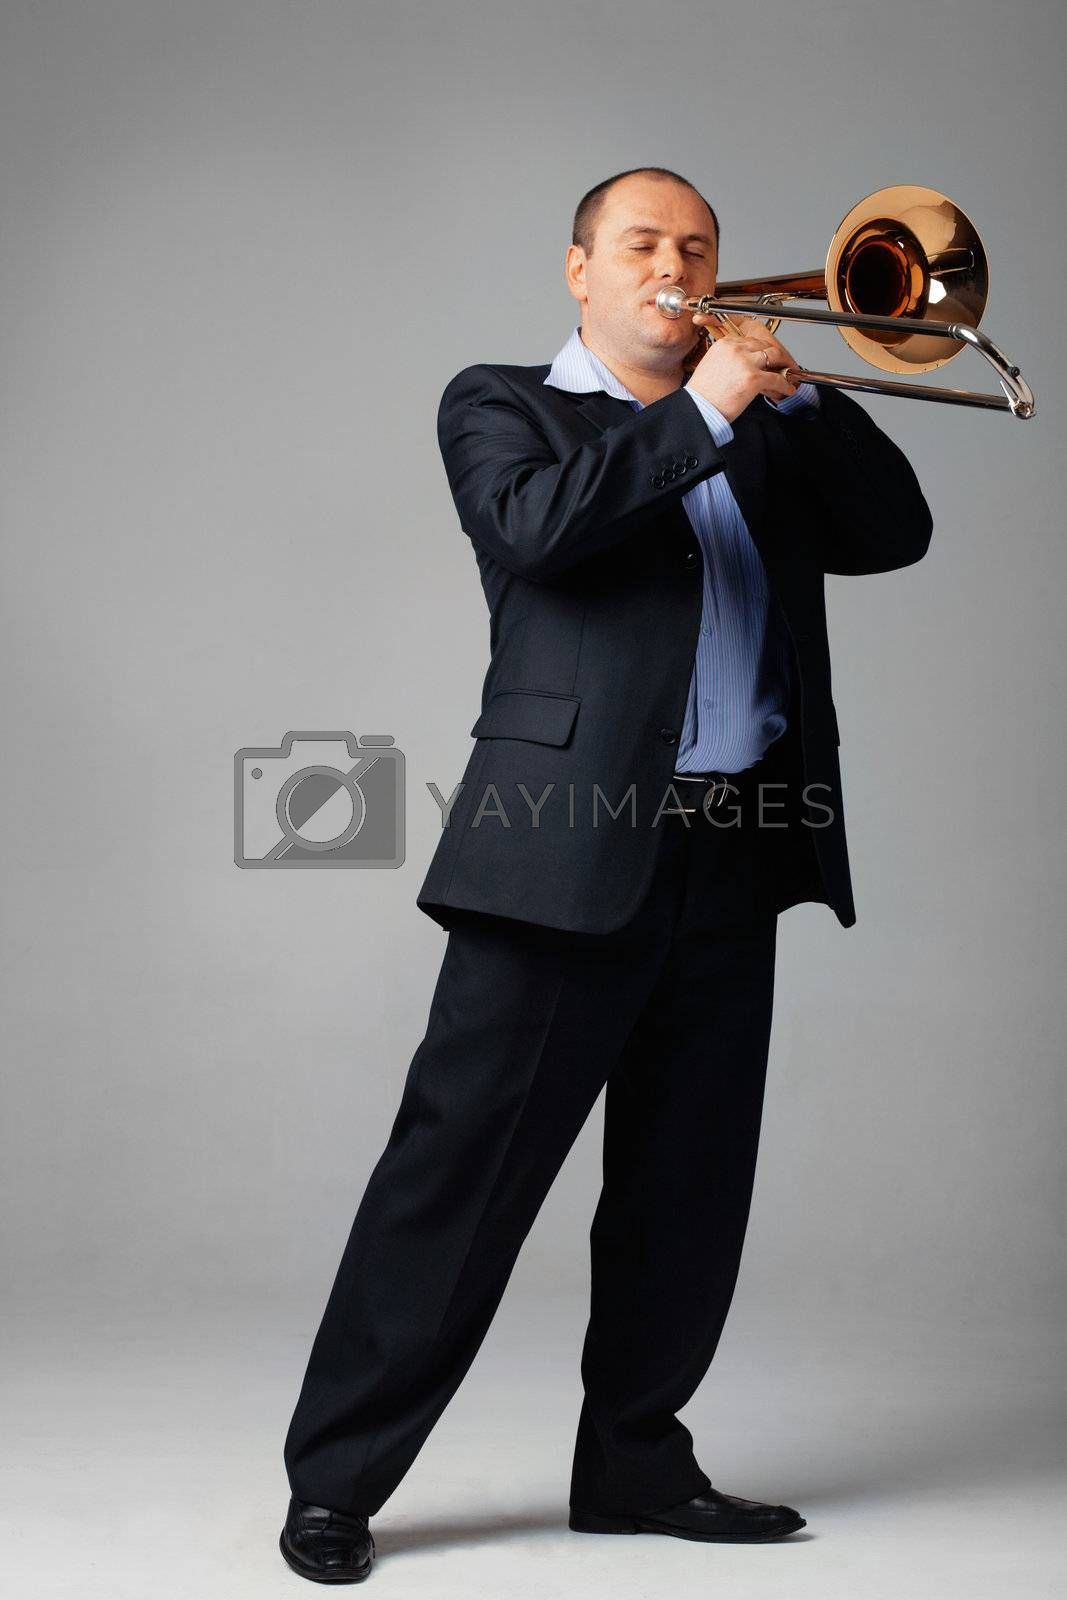 Portrait of a young man playing his trombone.